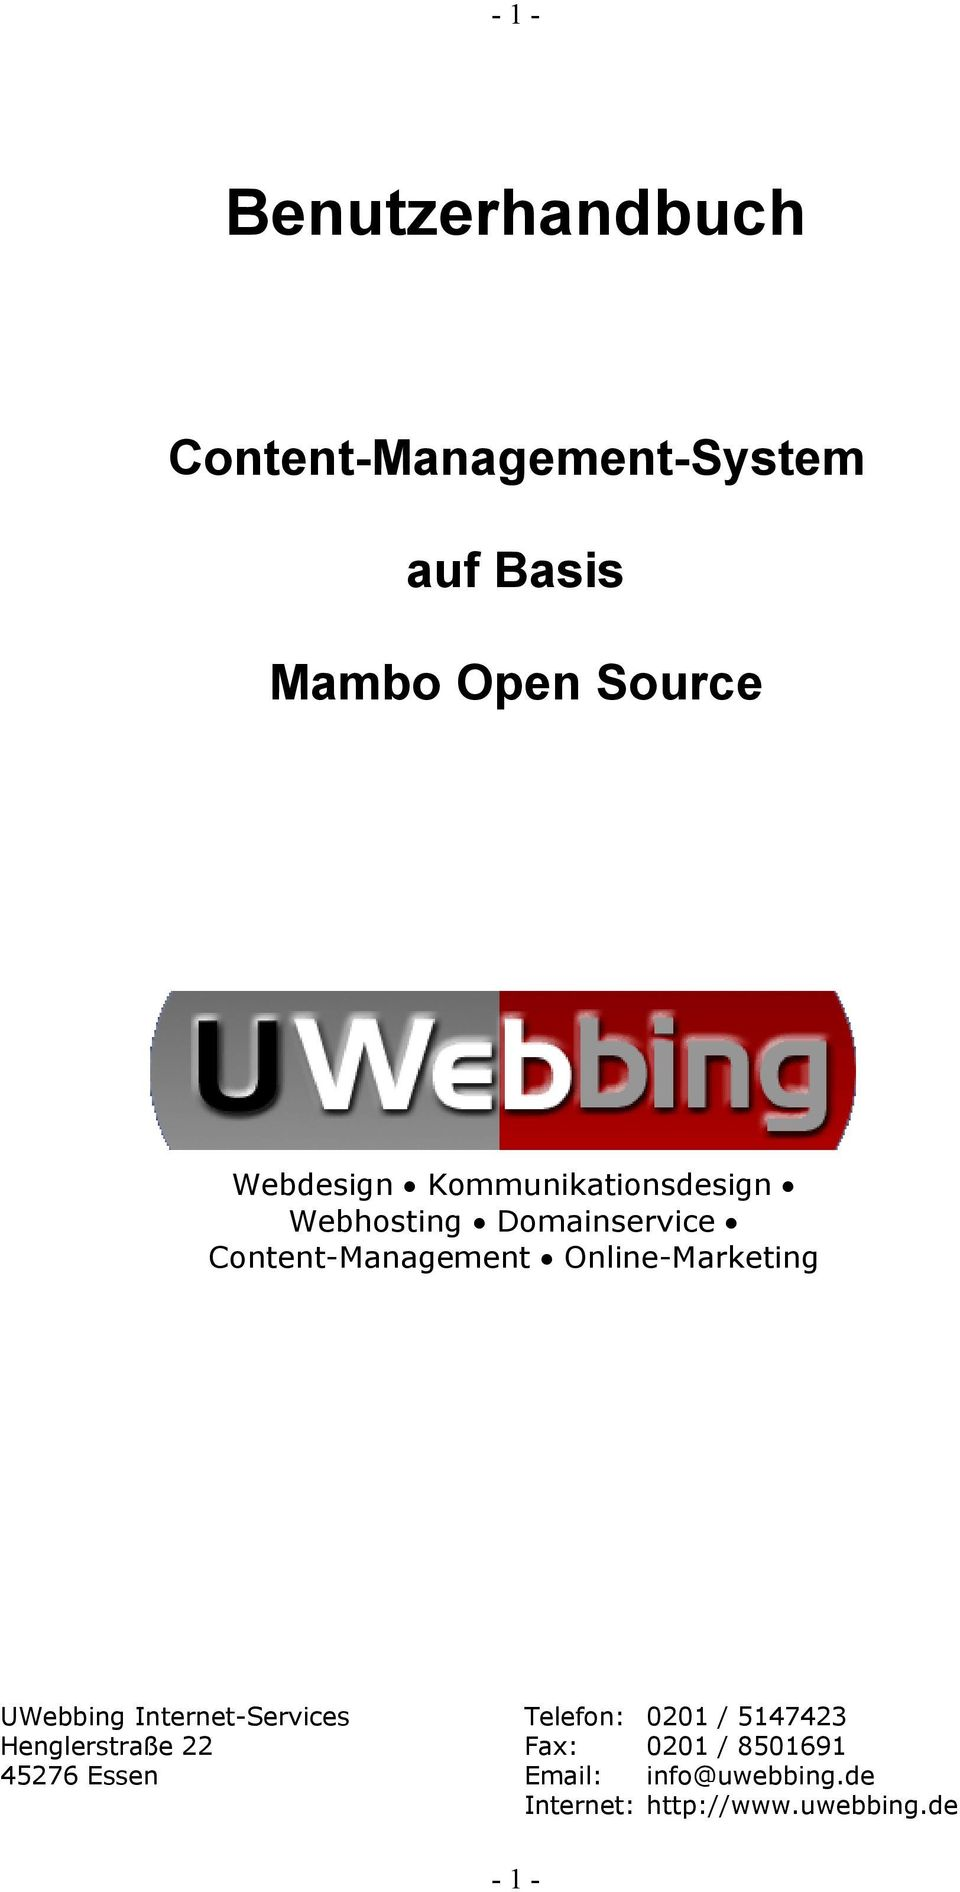 Online-Marketing UWebbing Internet-Services Telefon: 0201 / 5147423 Henglerstraße